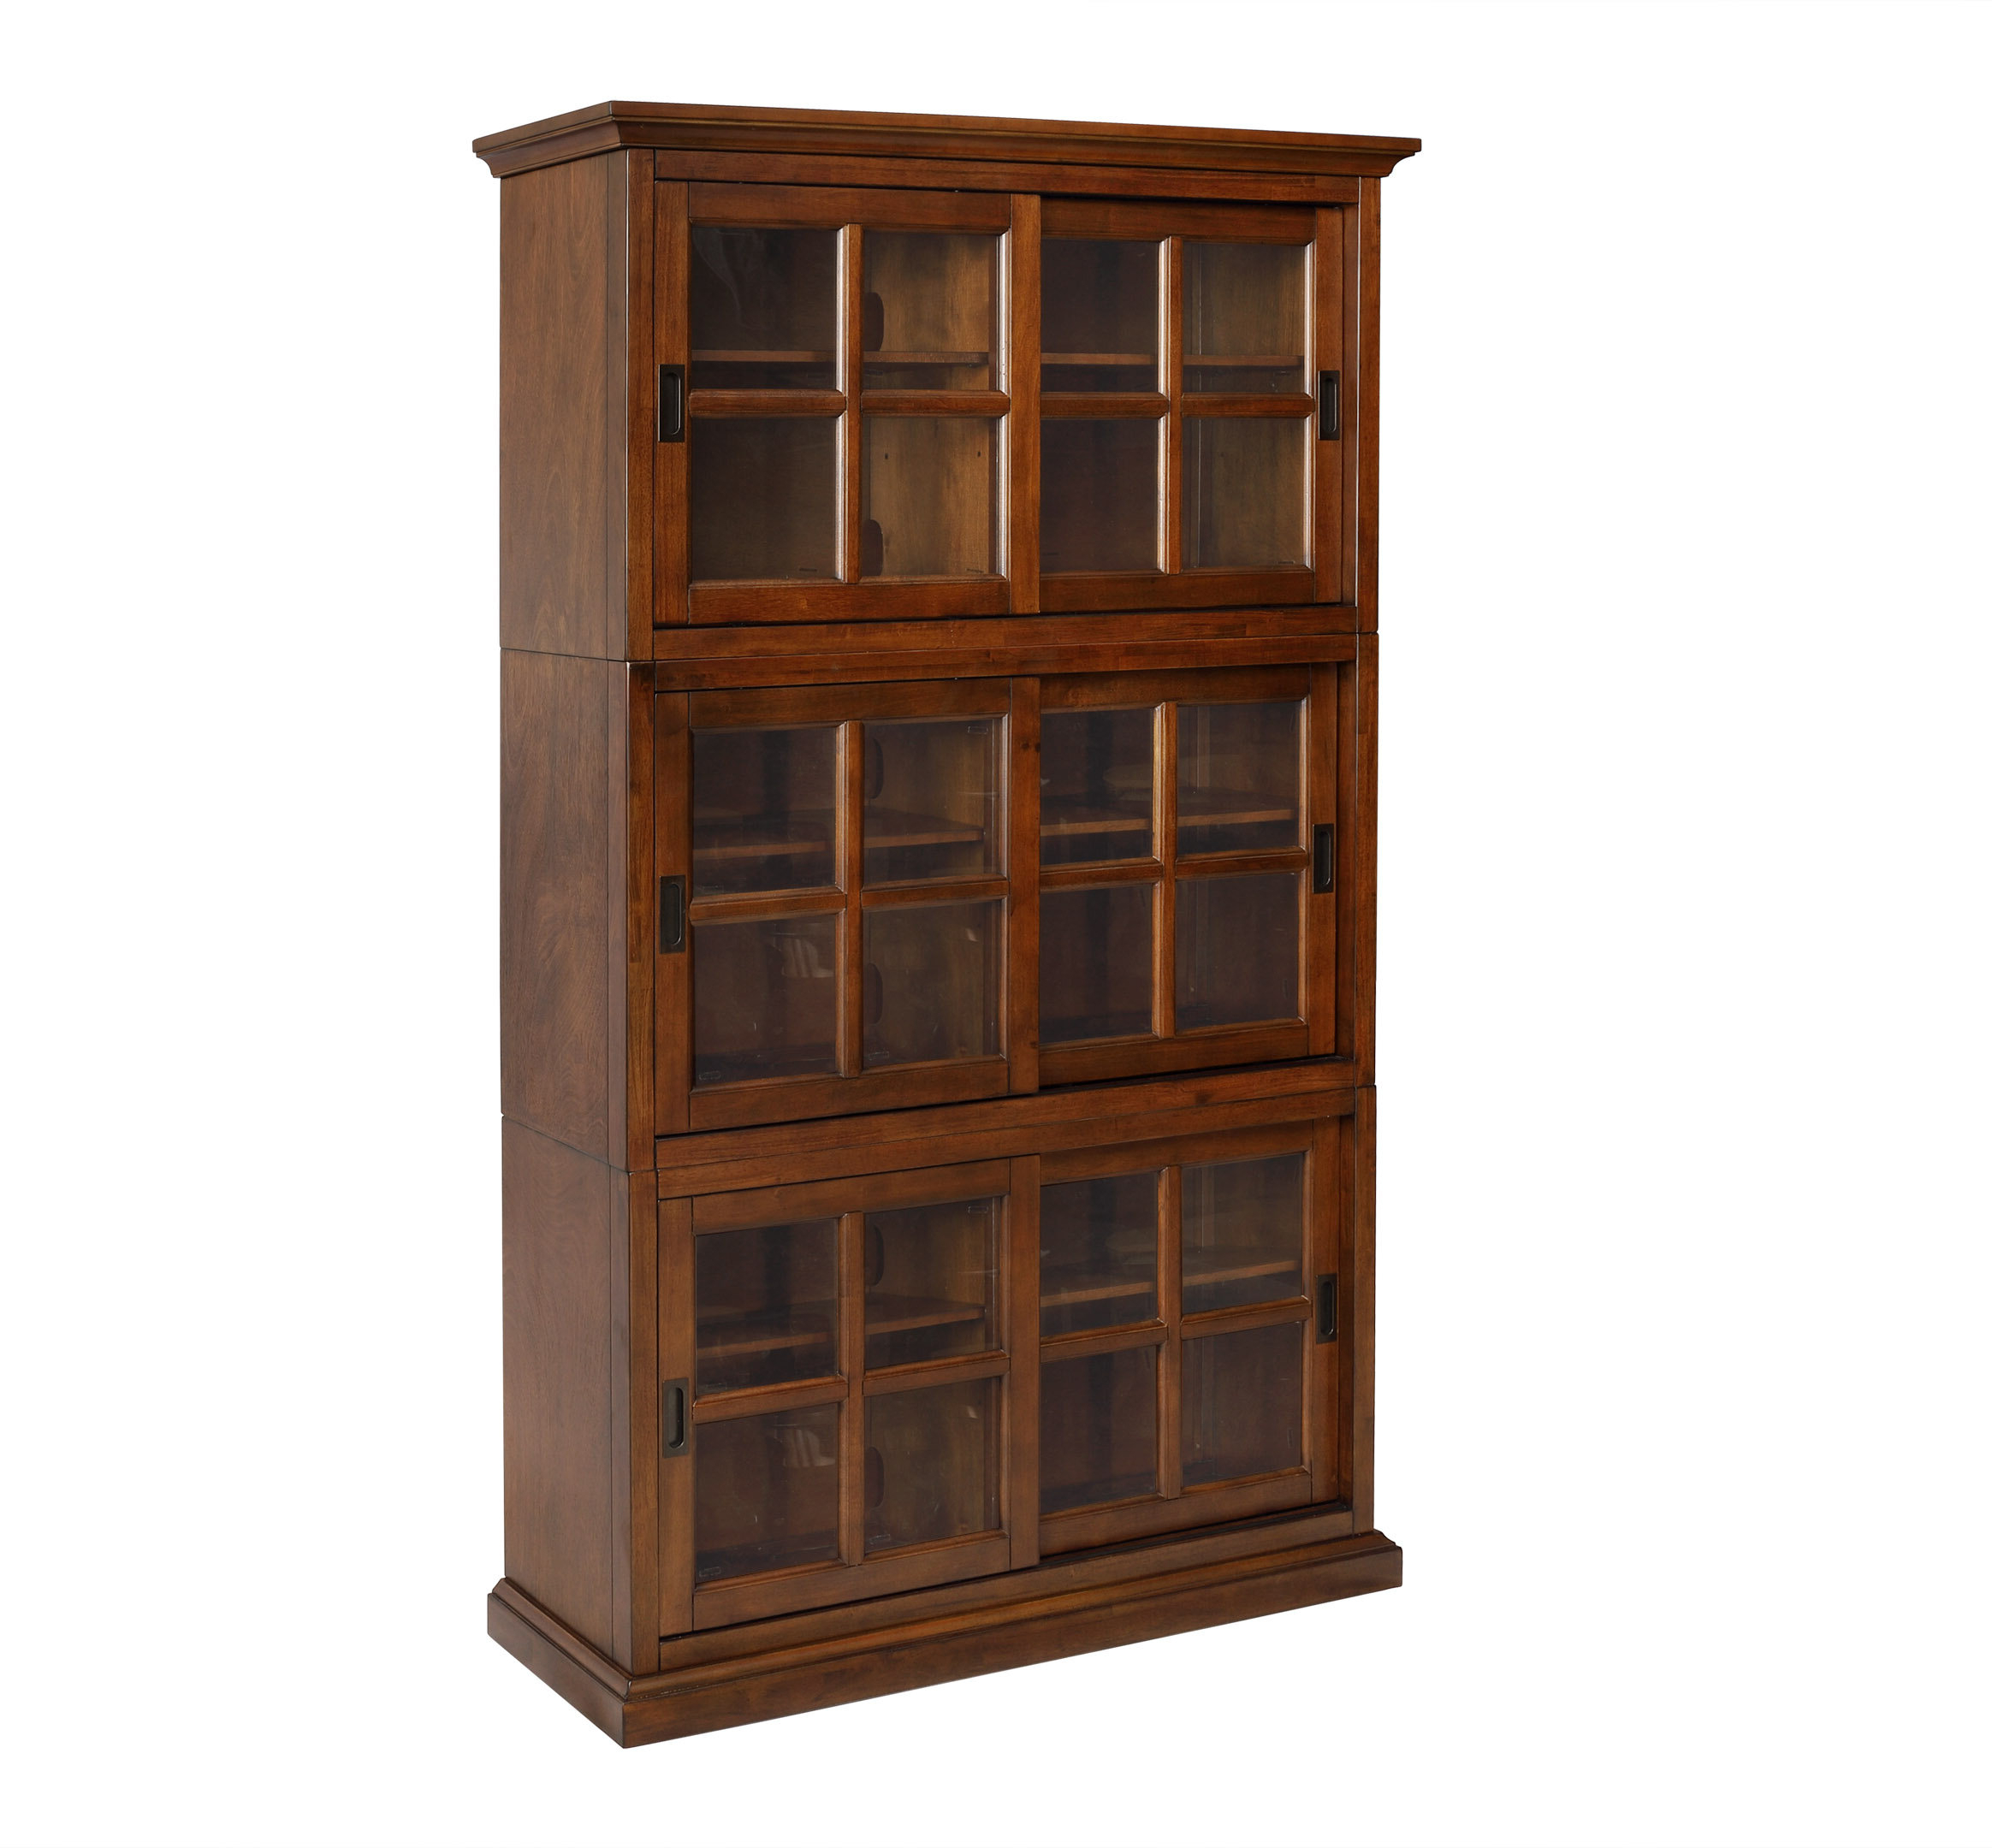 Preferred Tami Standard Bookcases With Regard To Wood Standard Bookcases You'll Love In (View 14 of 20)